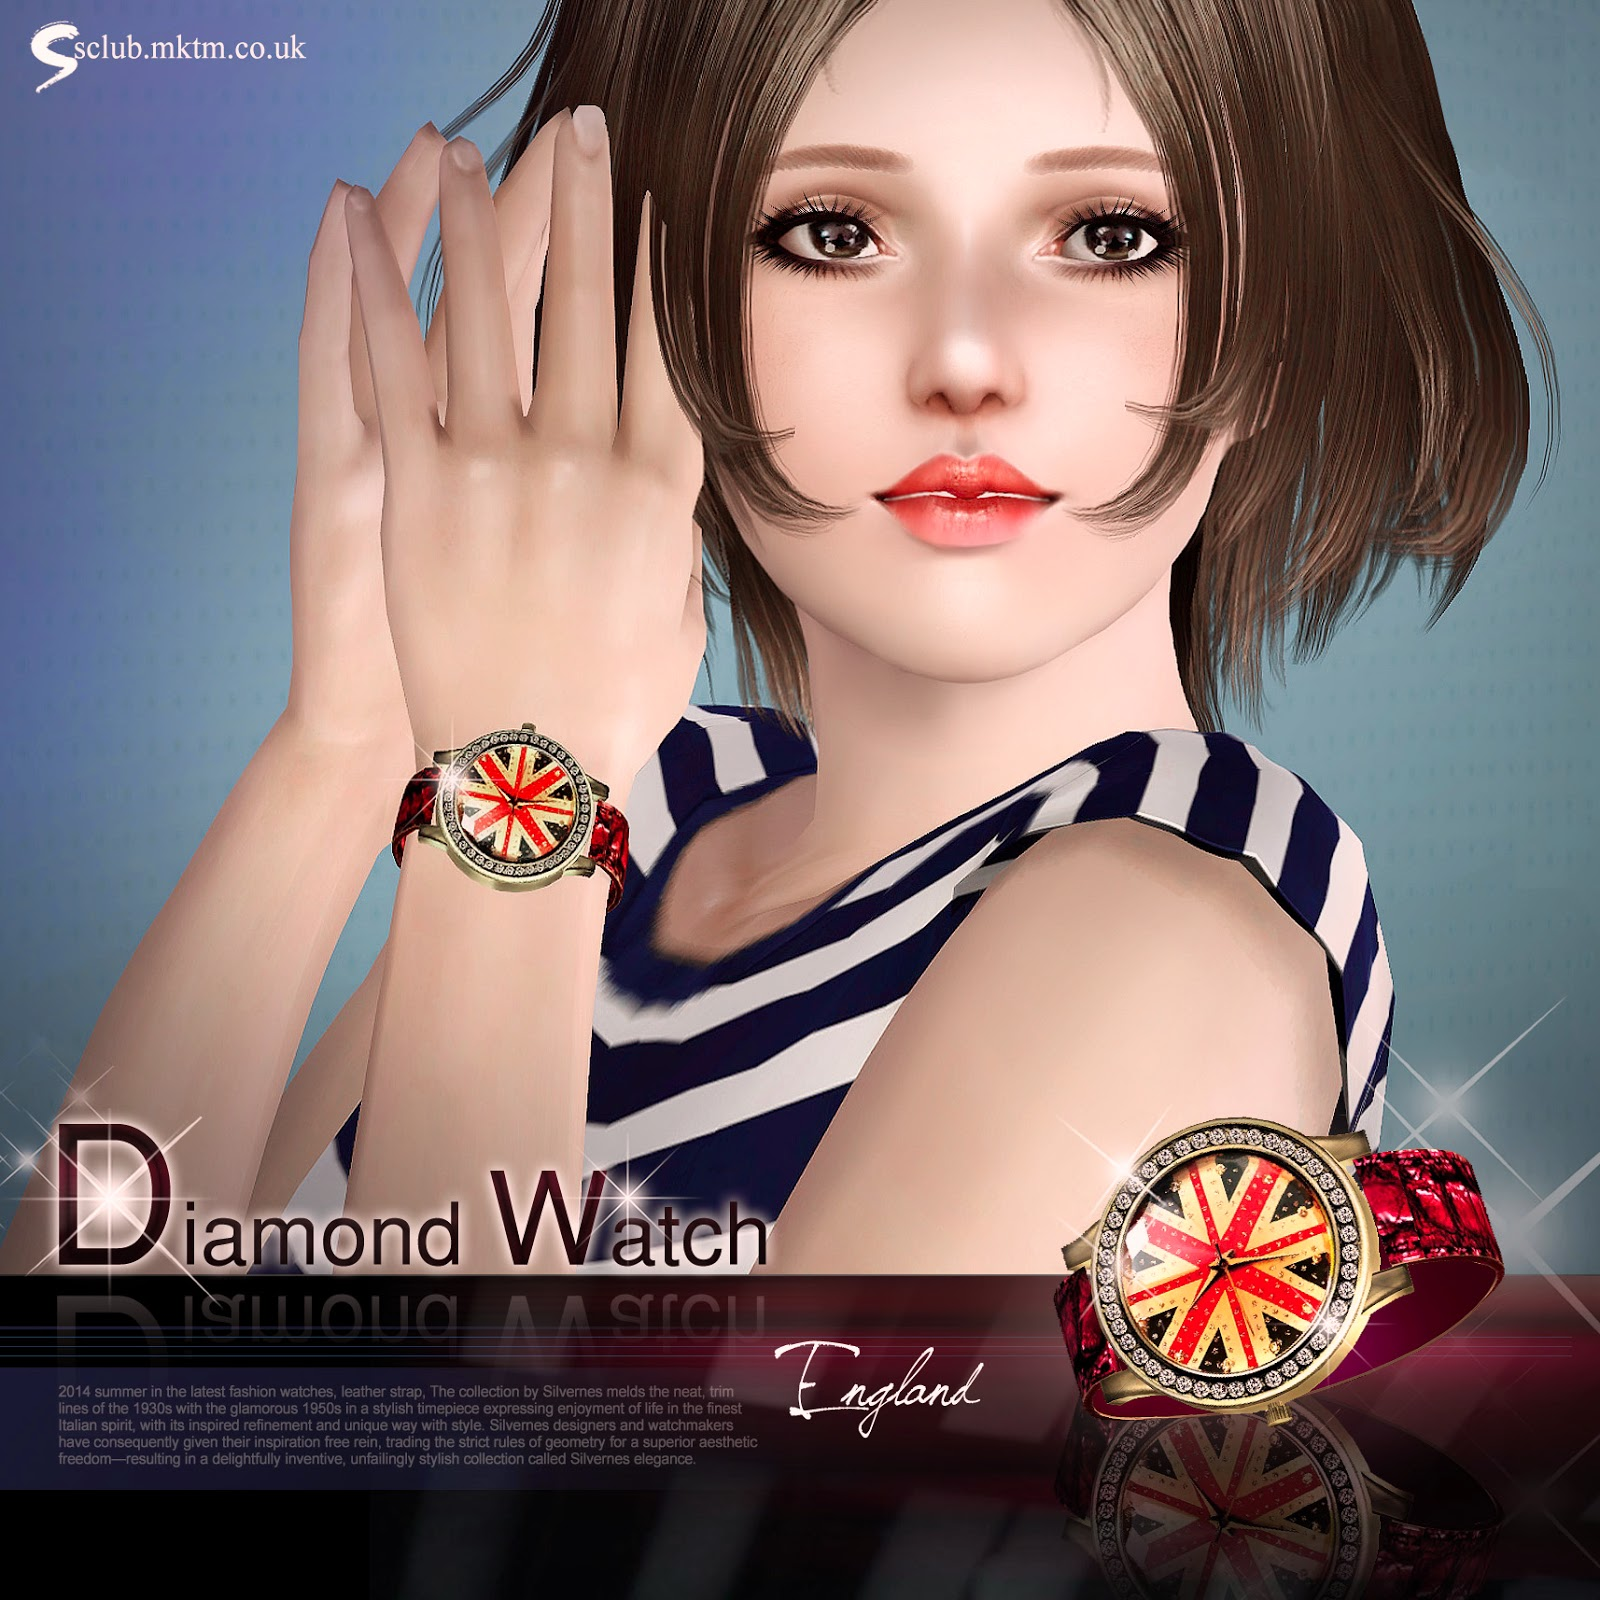 Diamond Watches by S-Club